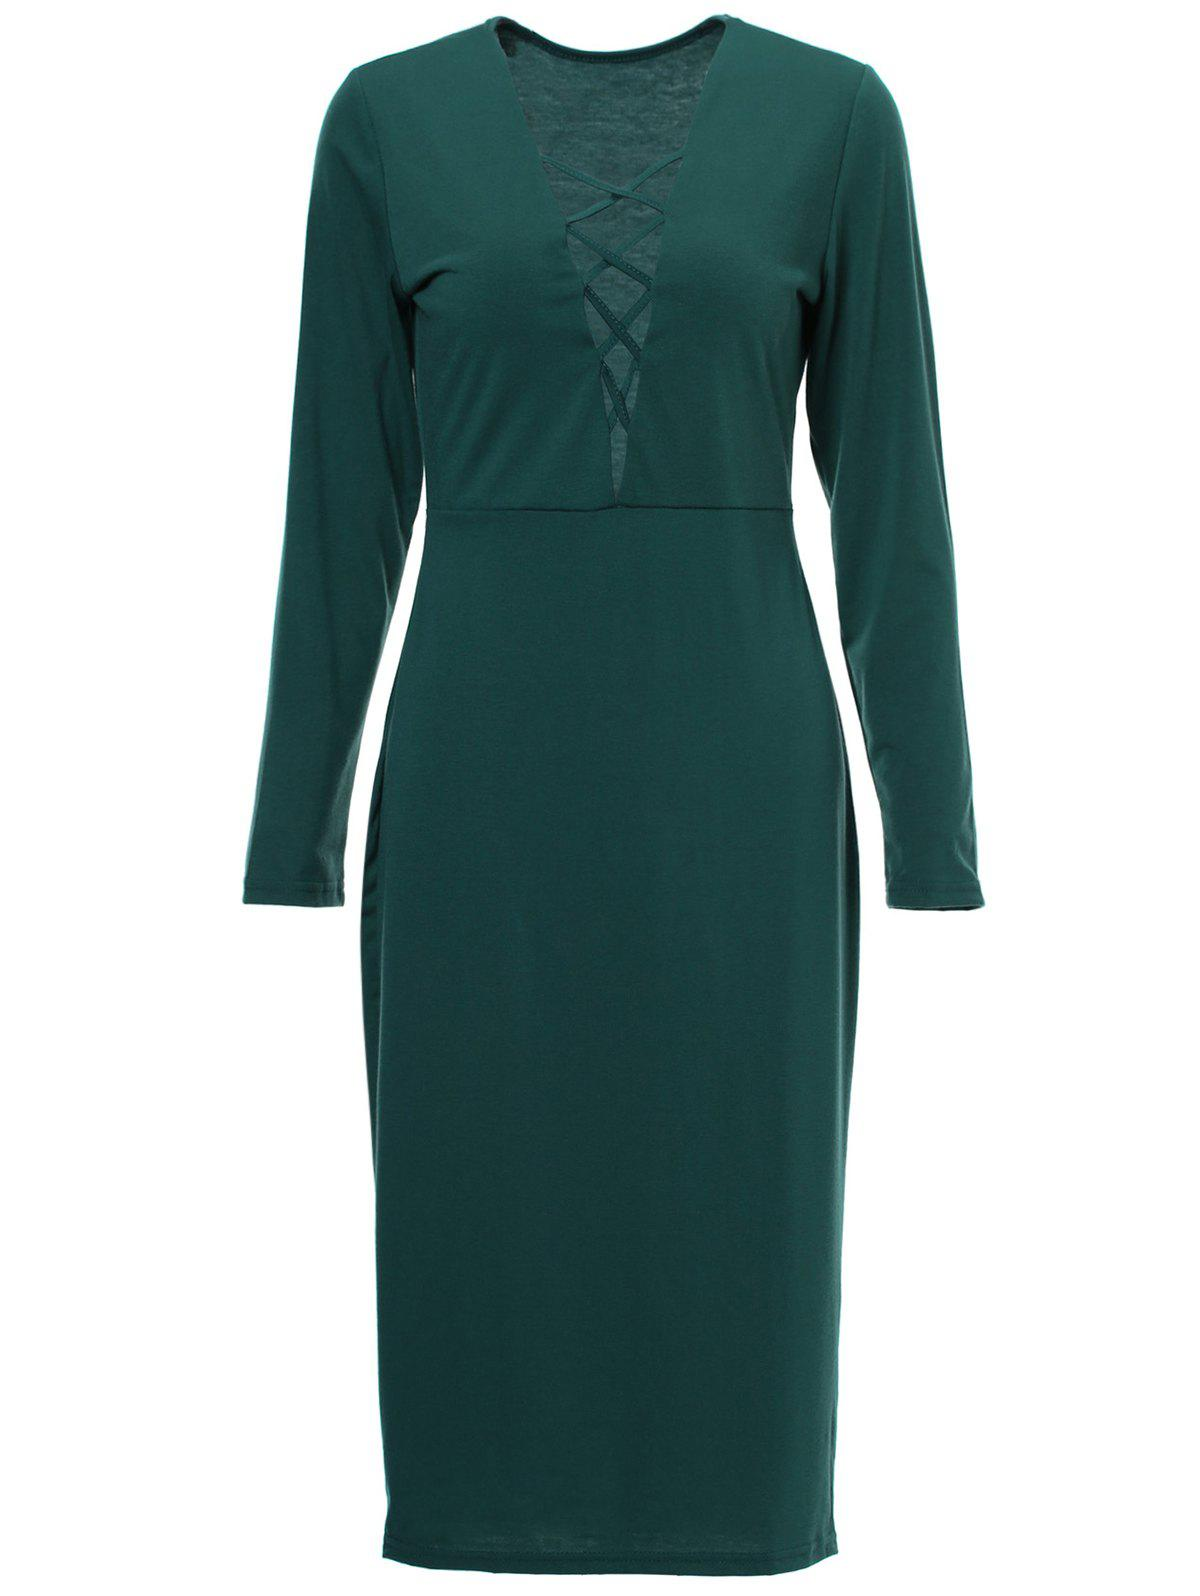 Sexy Solid Color Hollow Out Plunging Neck Bodycon Long Sleeve Dress For Women - GREEN S